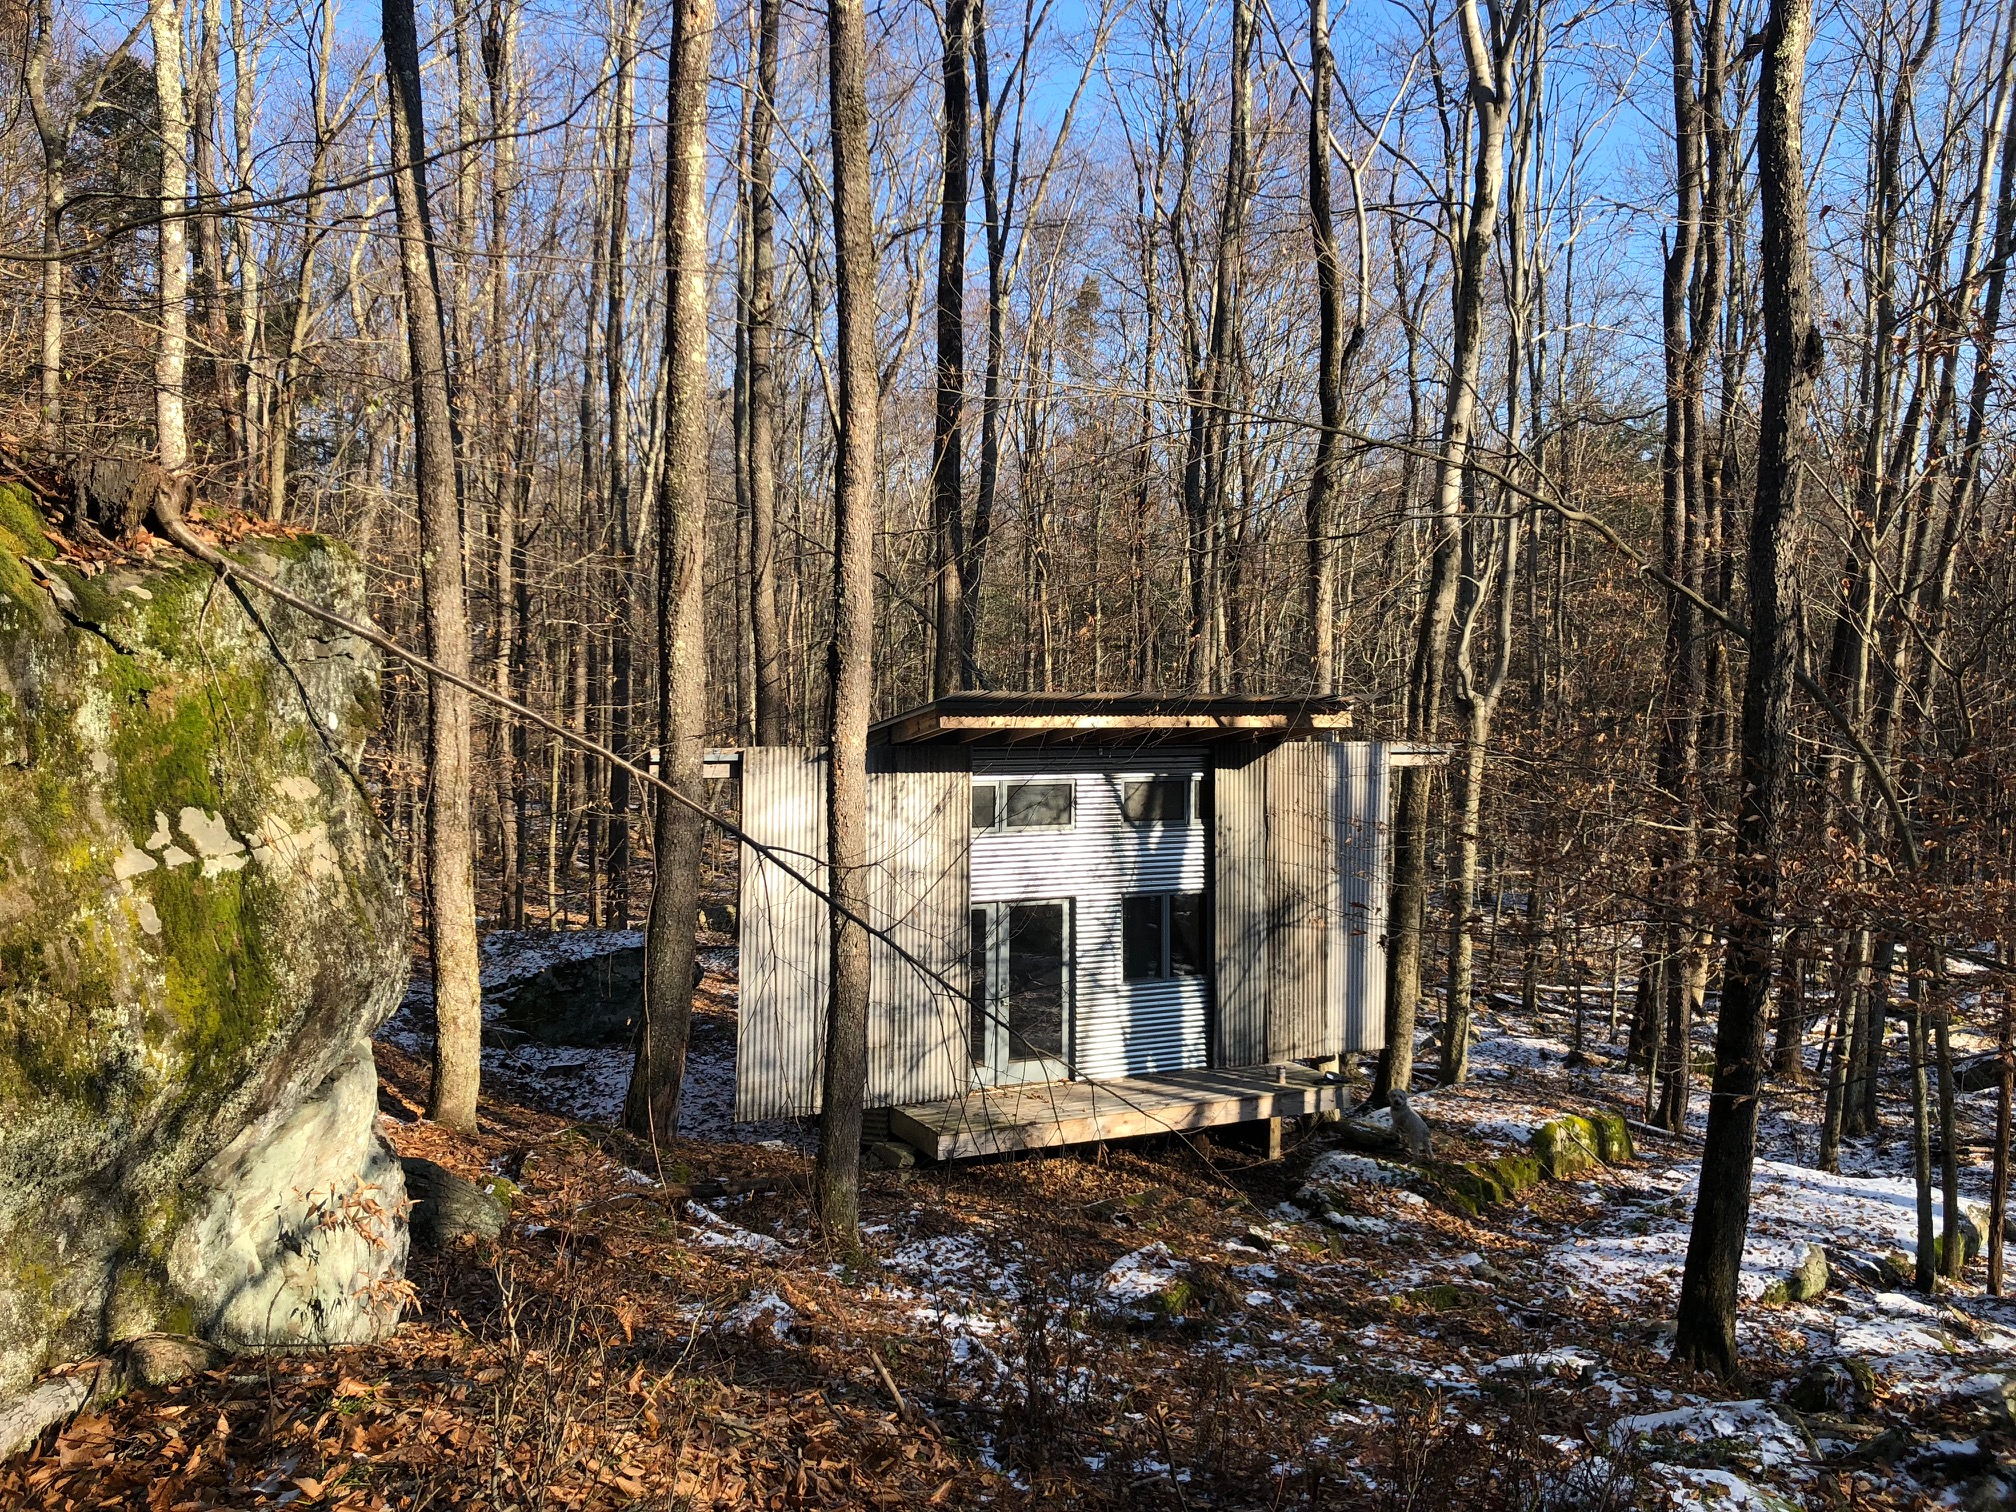 Artist studio tucked into majestic rock outcroppings